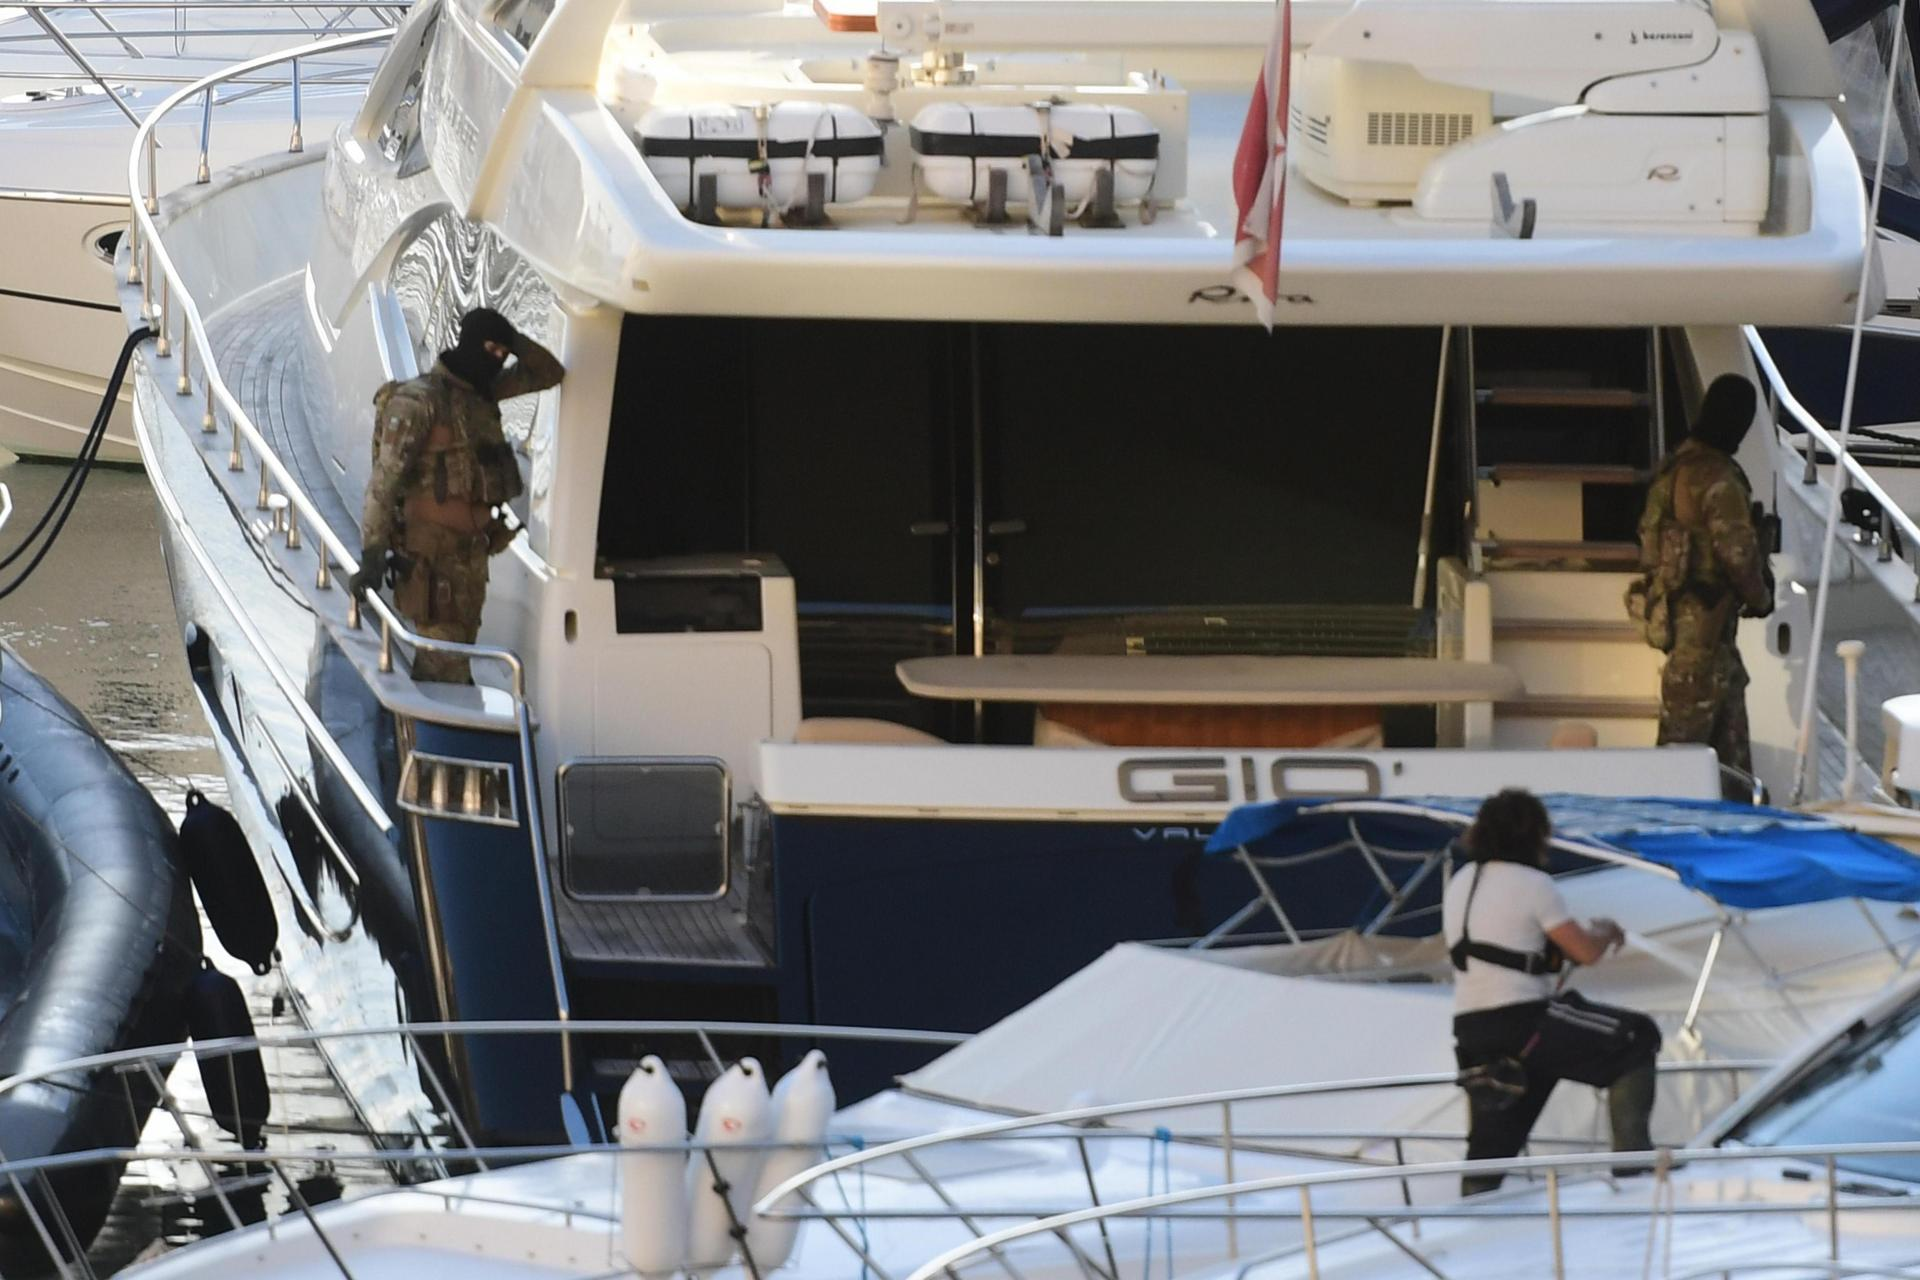 Yorgen Fenech's yacht, Gio, being searched at Portomaso marina on the morning of his arrest. Photo: Jonathan Borg